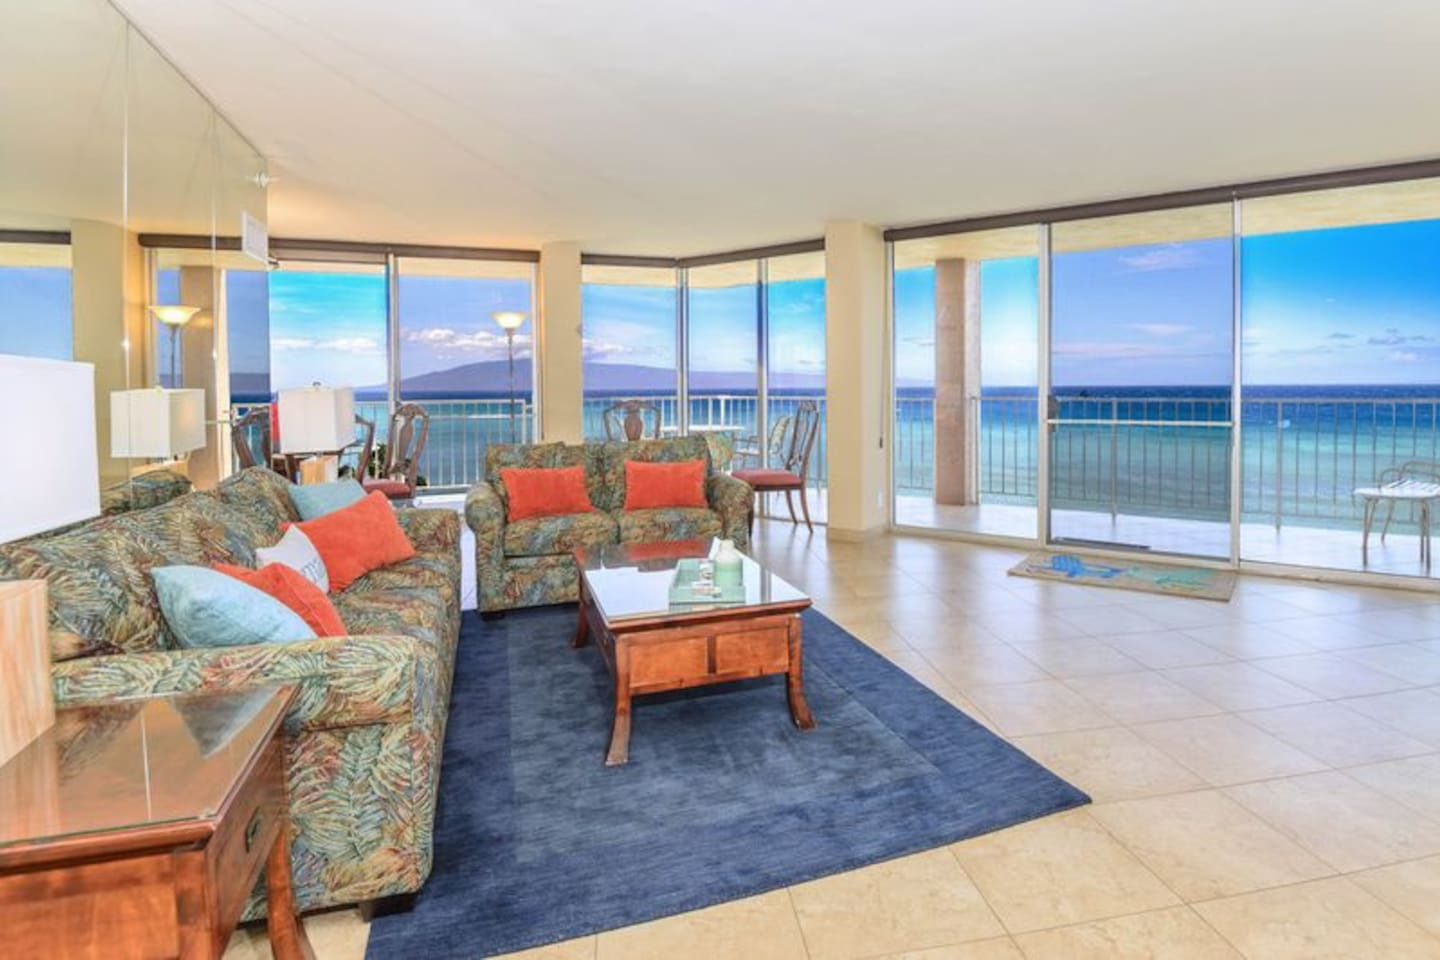 180 degree ocean and sunset views with Lanai and Molokai islands